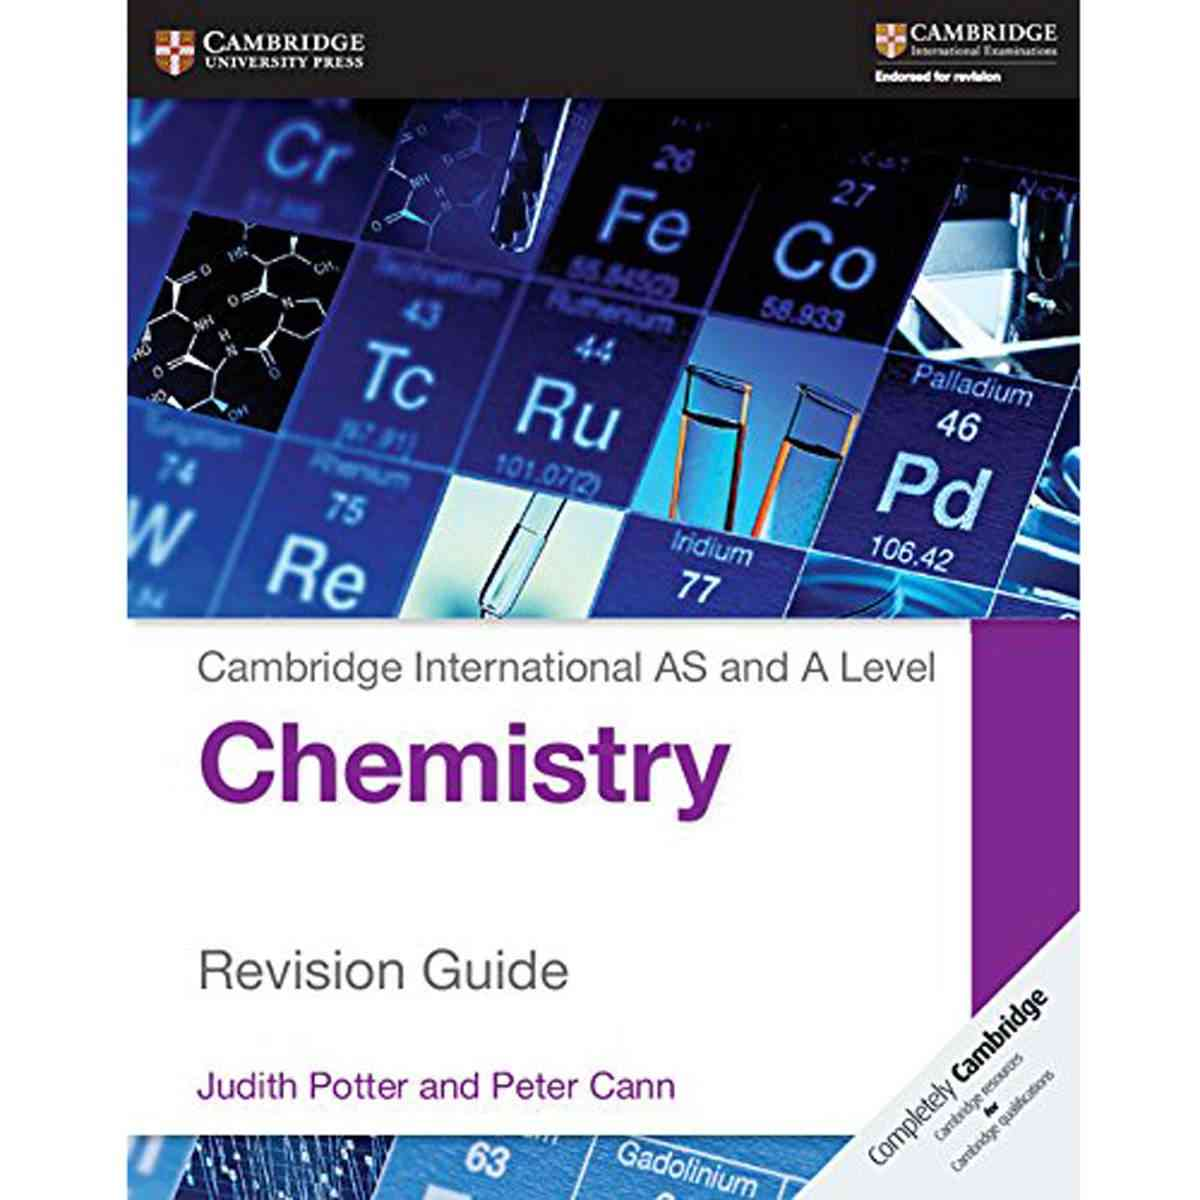 Paramount CAMBRIDGE INTERNATIONAL AS AND A LEVEL CHEMISTRY REVISION GUIDE